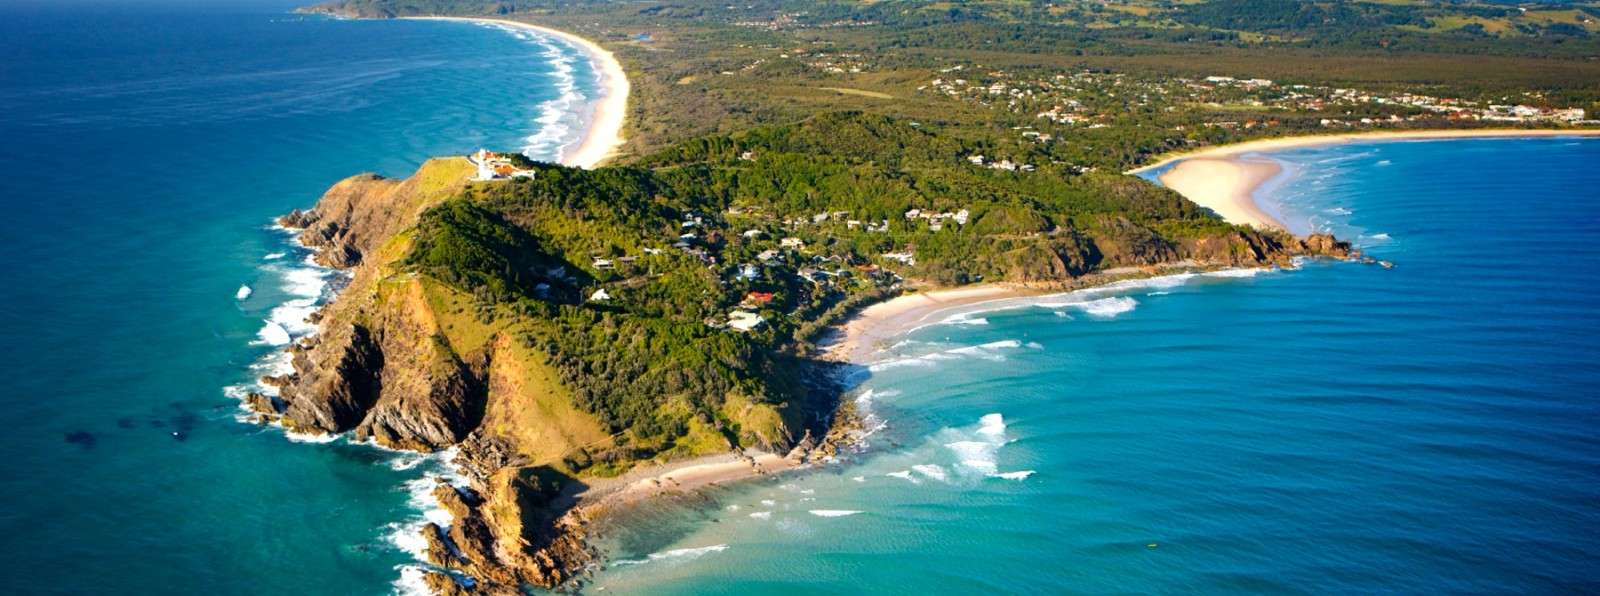 Craggy coastline with some sandy beaches and lush green hills, surrounded by lovely blue seas